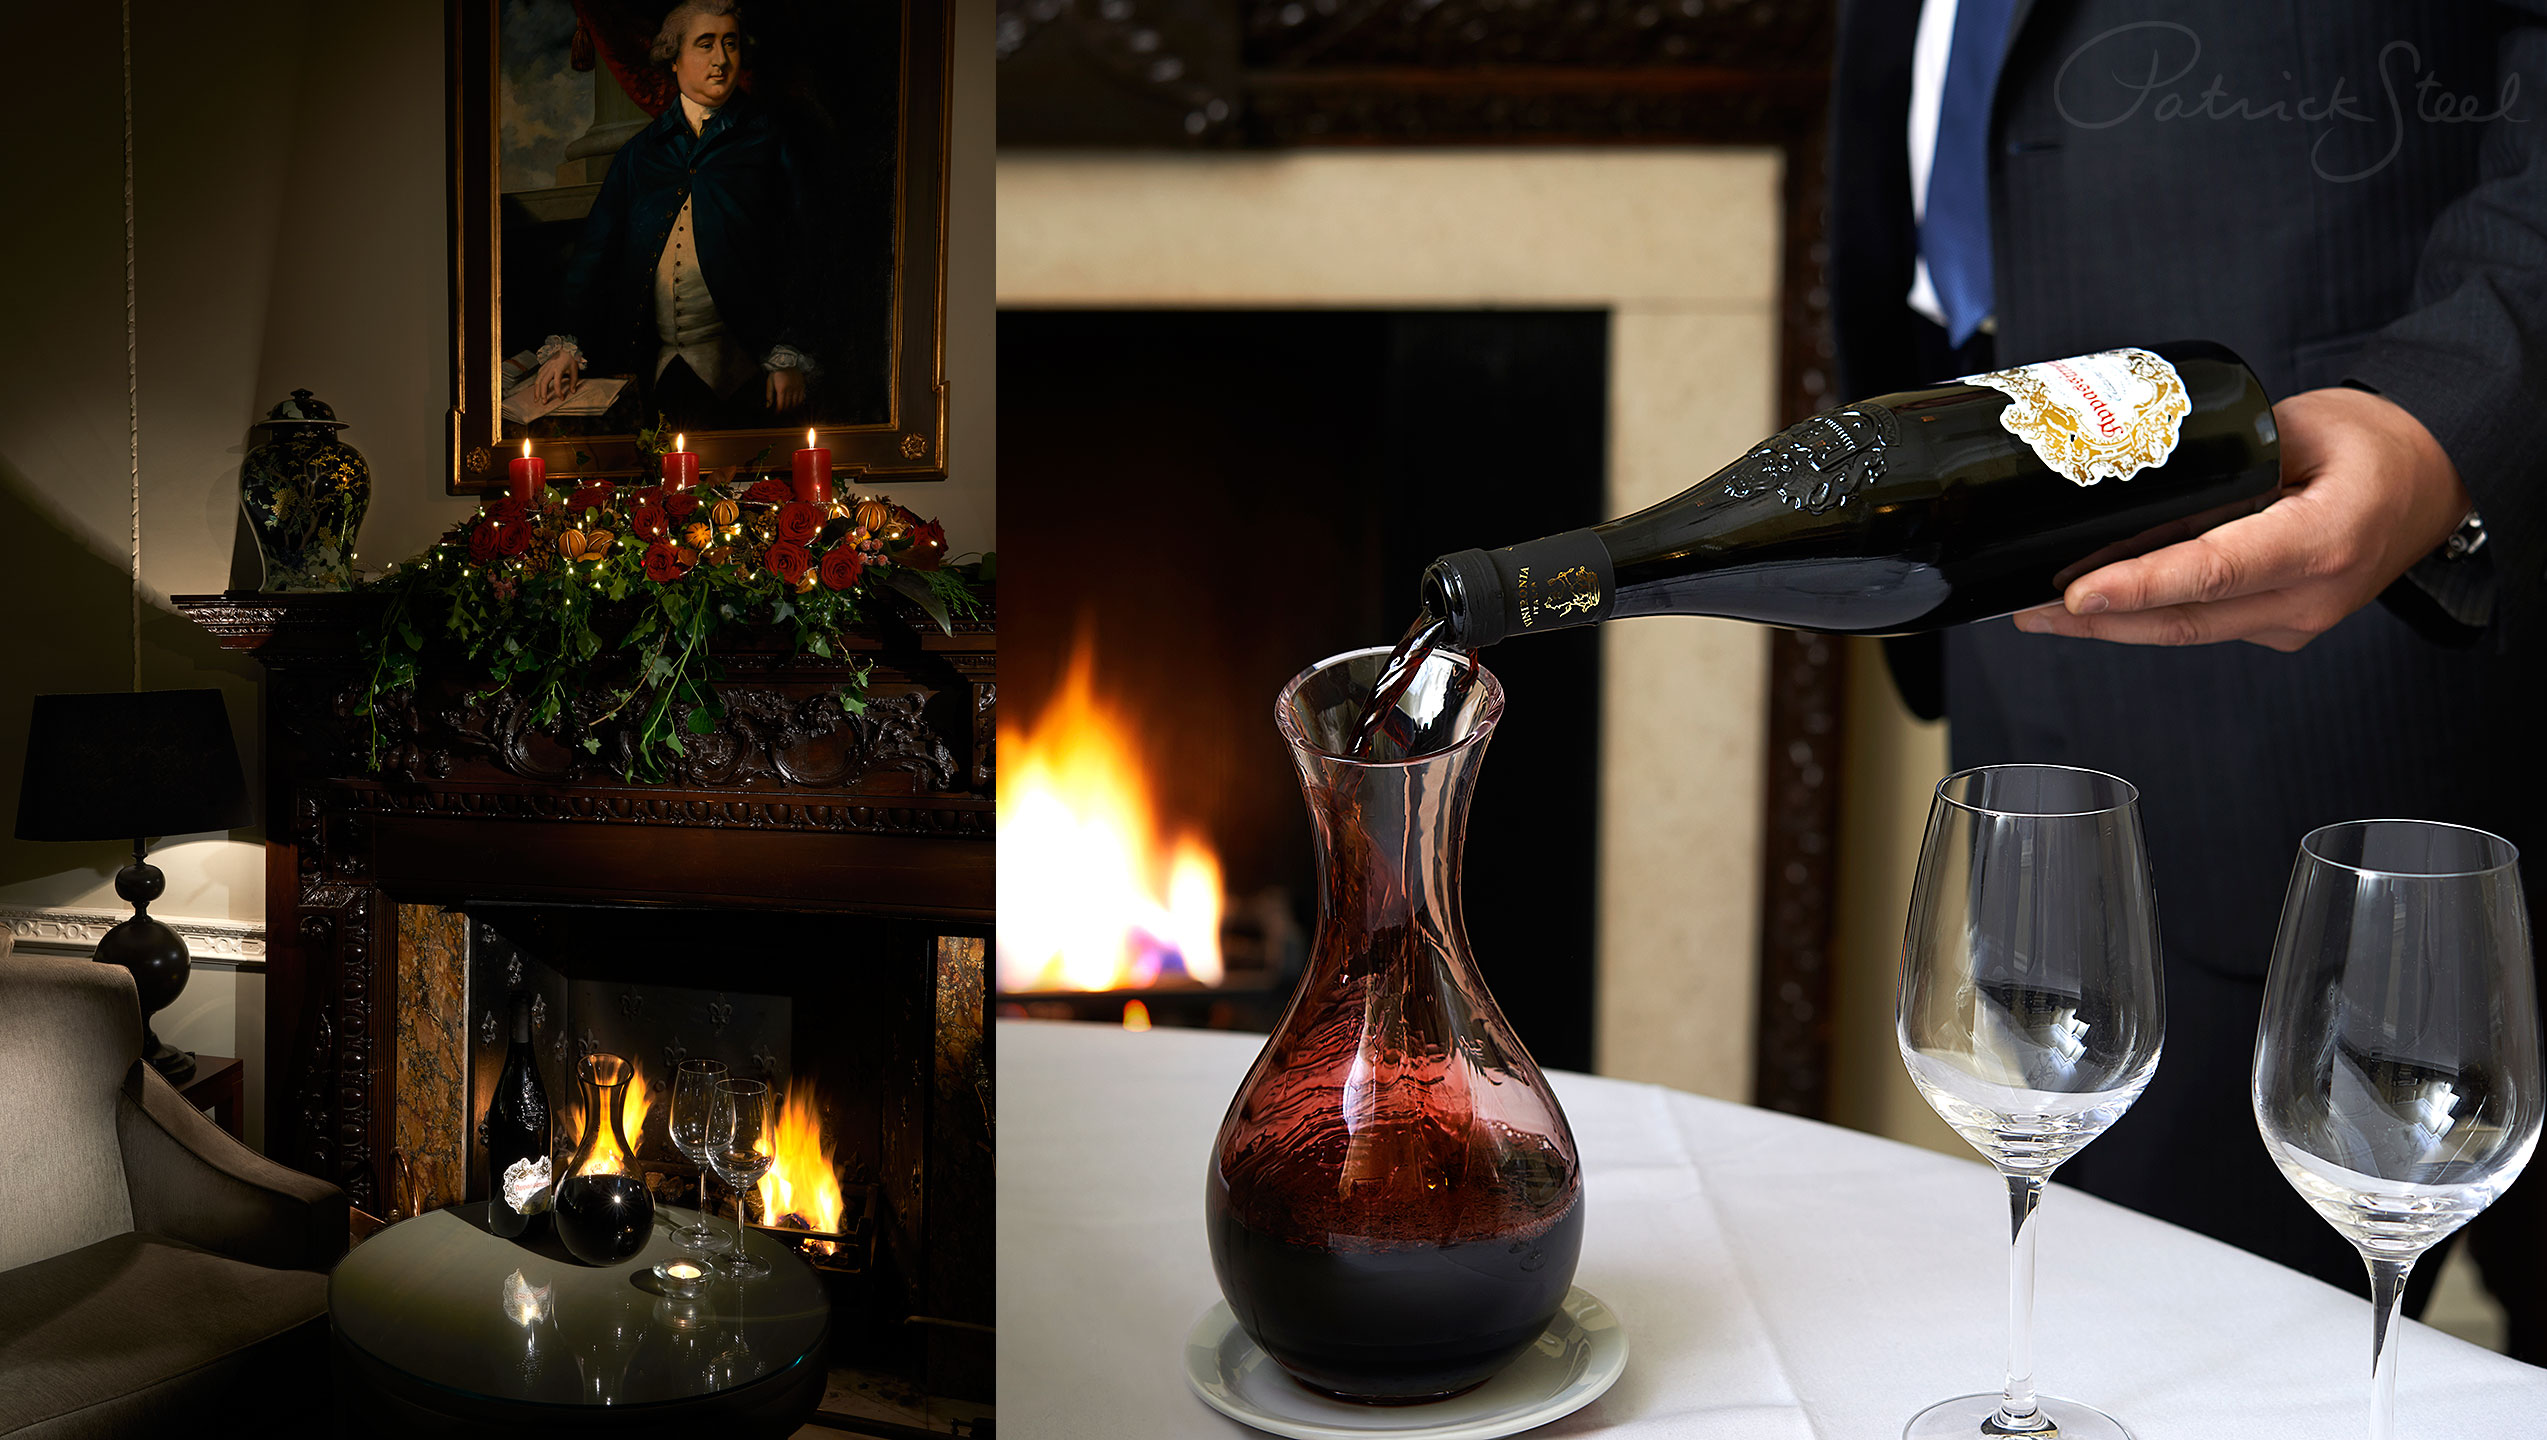 photograph professional Interiors Photographer Patrick Steel London pouring wine decanter